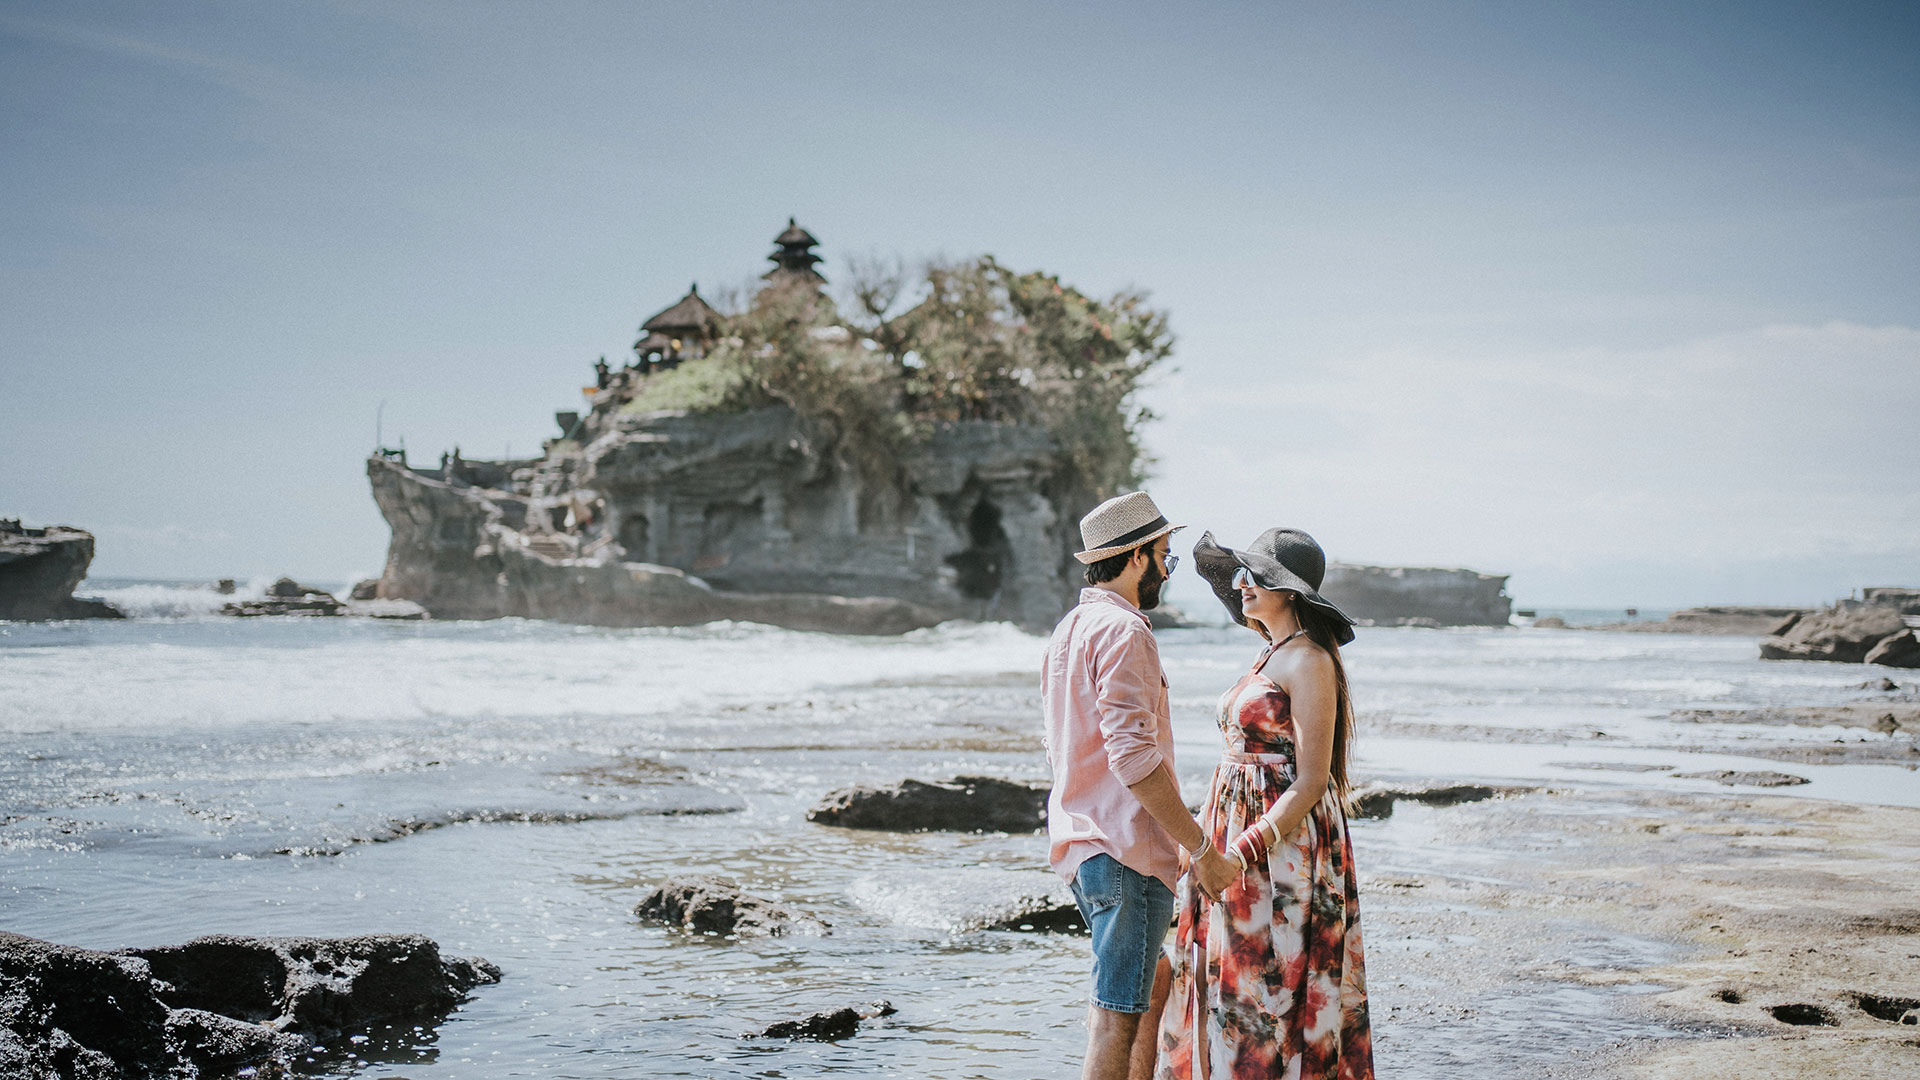 vni and Malhotra are new married couple from India and done their honeymoon in Bali few months ago before the pandemic...